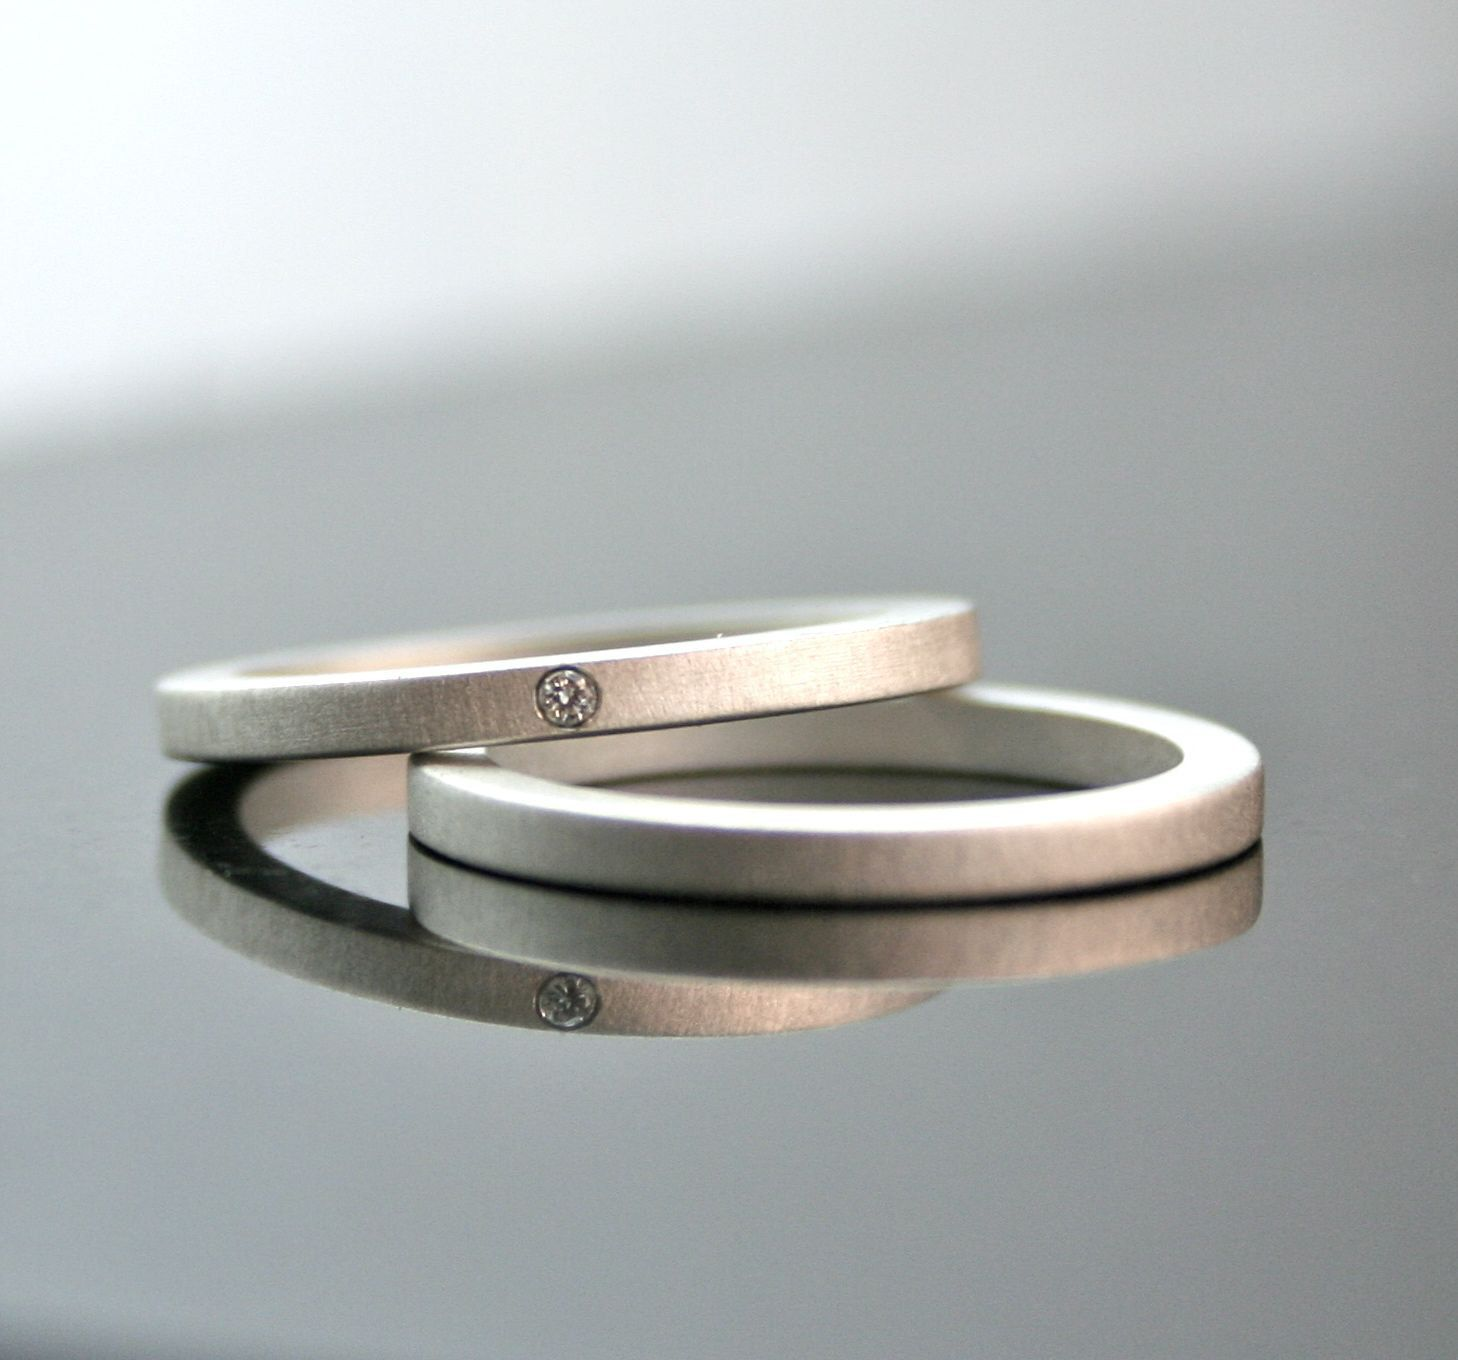 Lovely Wedding Ring Sets Bride Groom